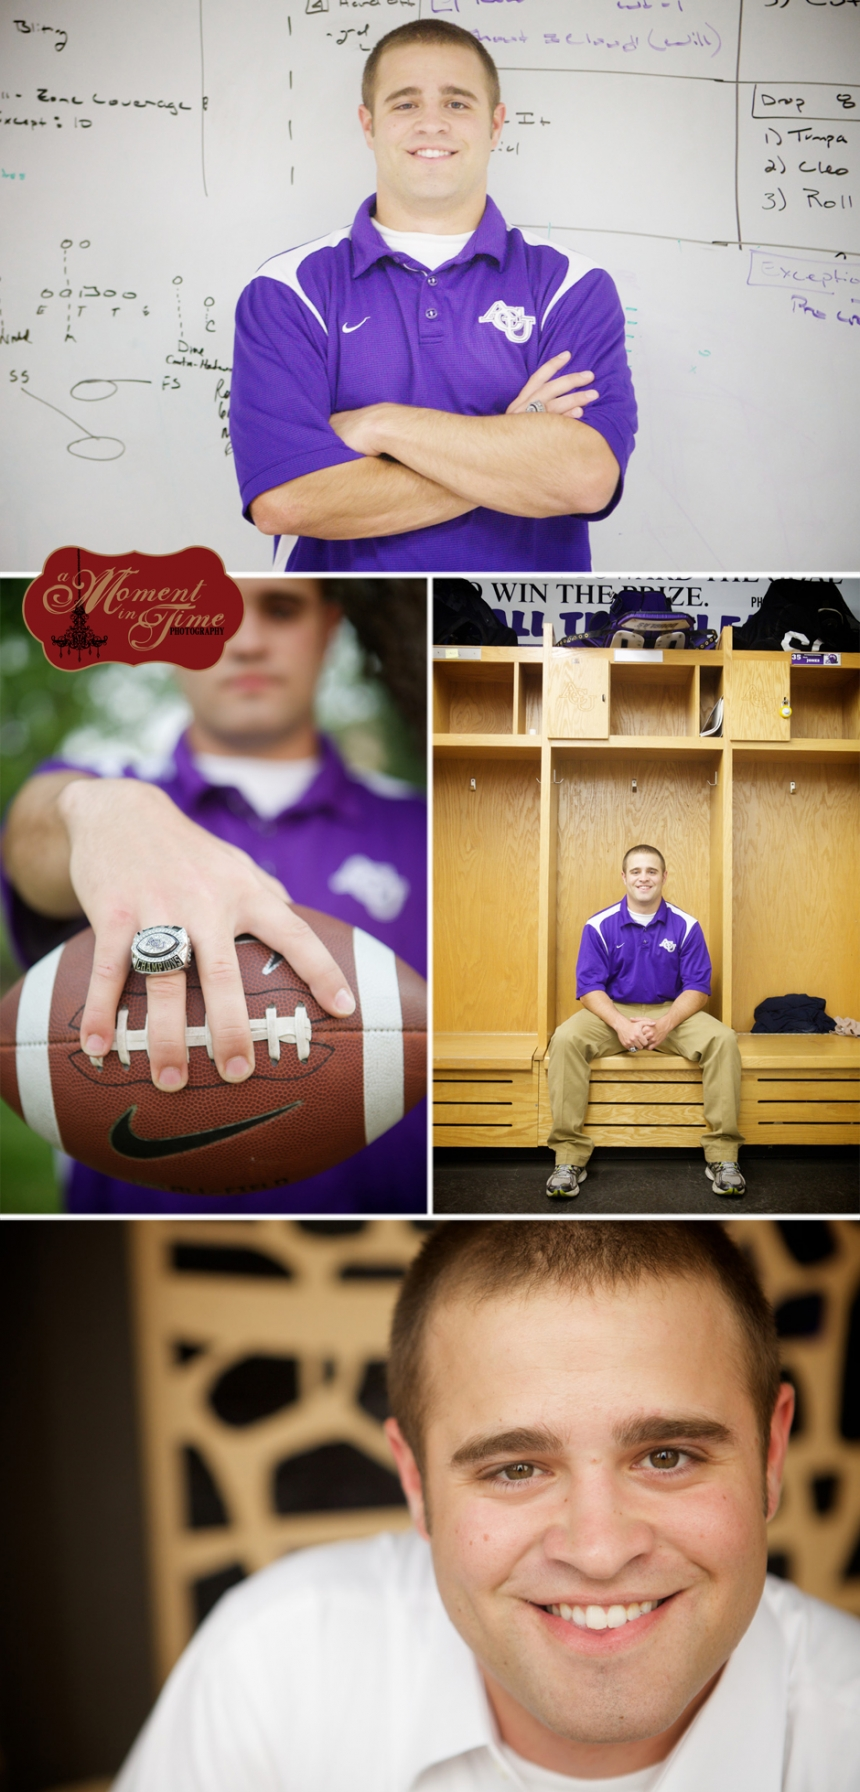 Bradley Bryant, senior at Abilene Christian University, or ACU, had senior photographer Jennifer Nieland of A Moment in Time Photography take his college senior portraits for graduation. Bradley helps with the Abilene Christian University football program, where they have won several LSC Conference Championships.